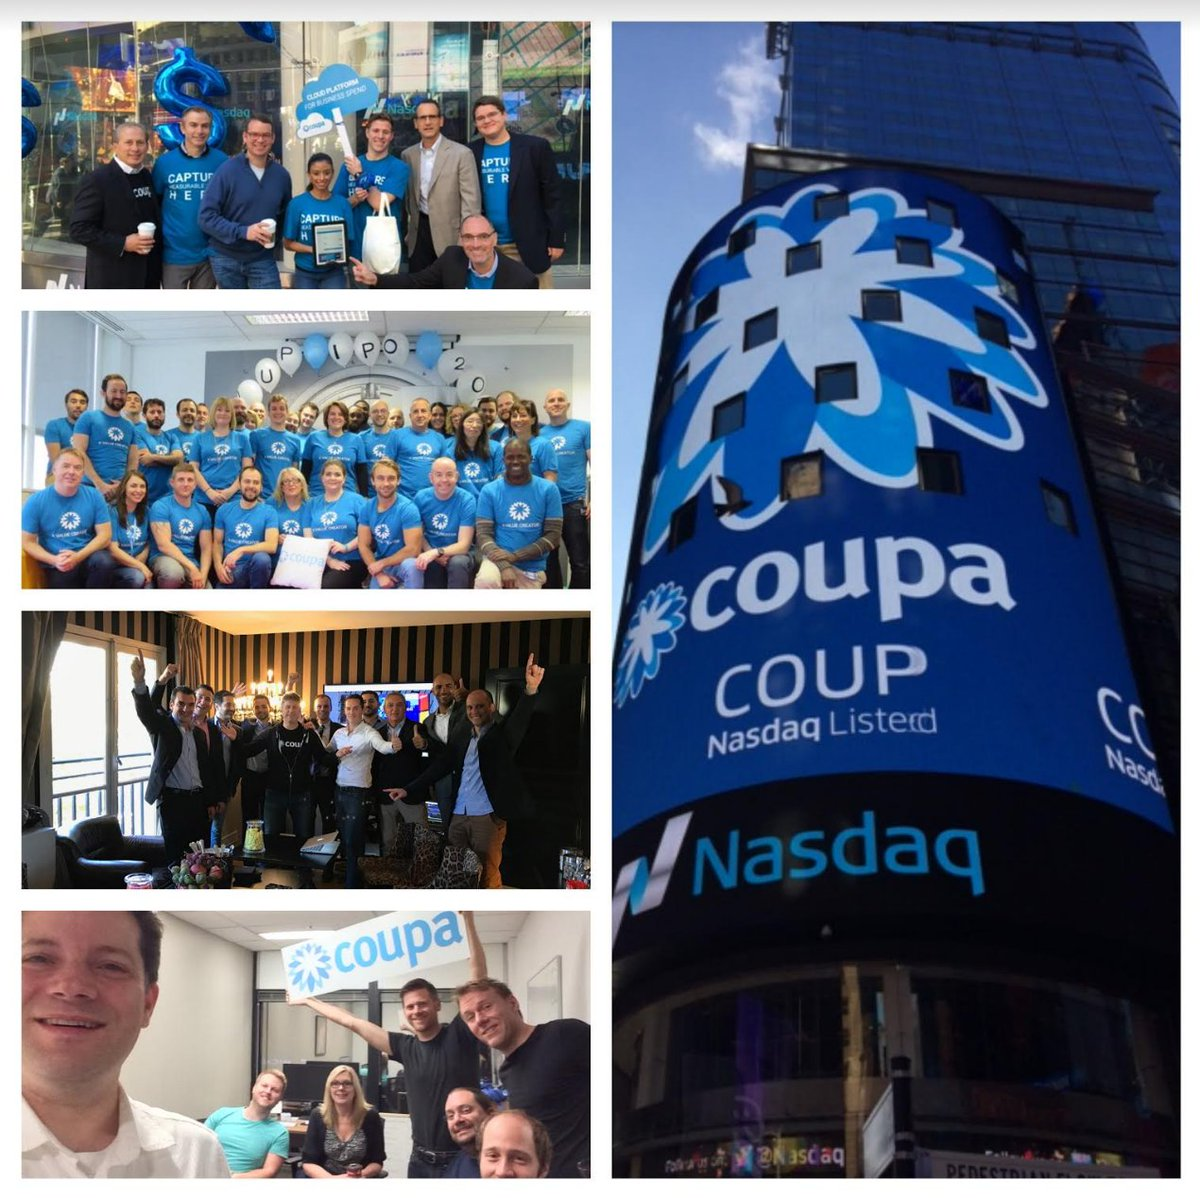 This is happening! NASDAQ officially welcoming $COUP at Coupa HQ right now! https://t.co/QzFdvtENq8